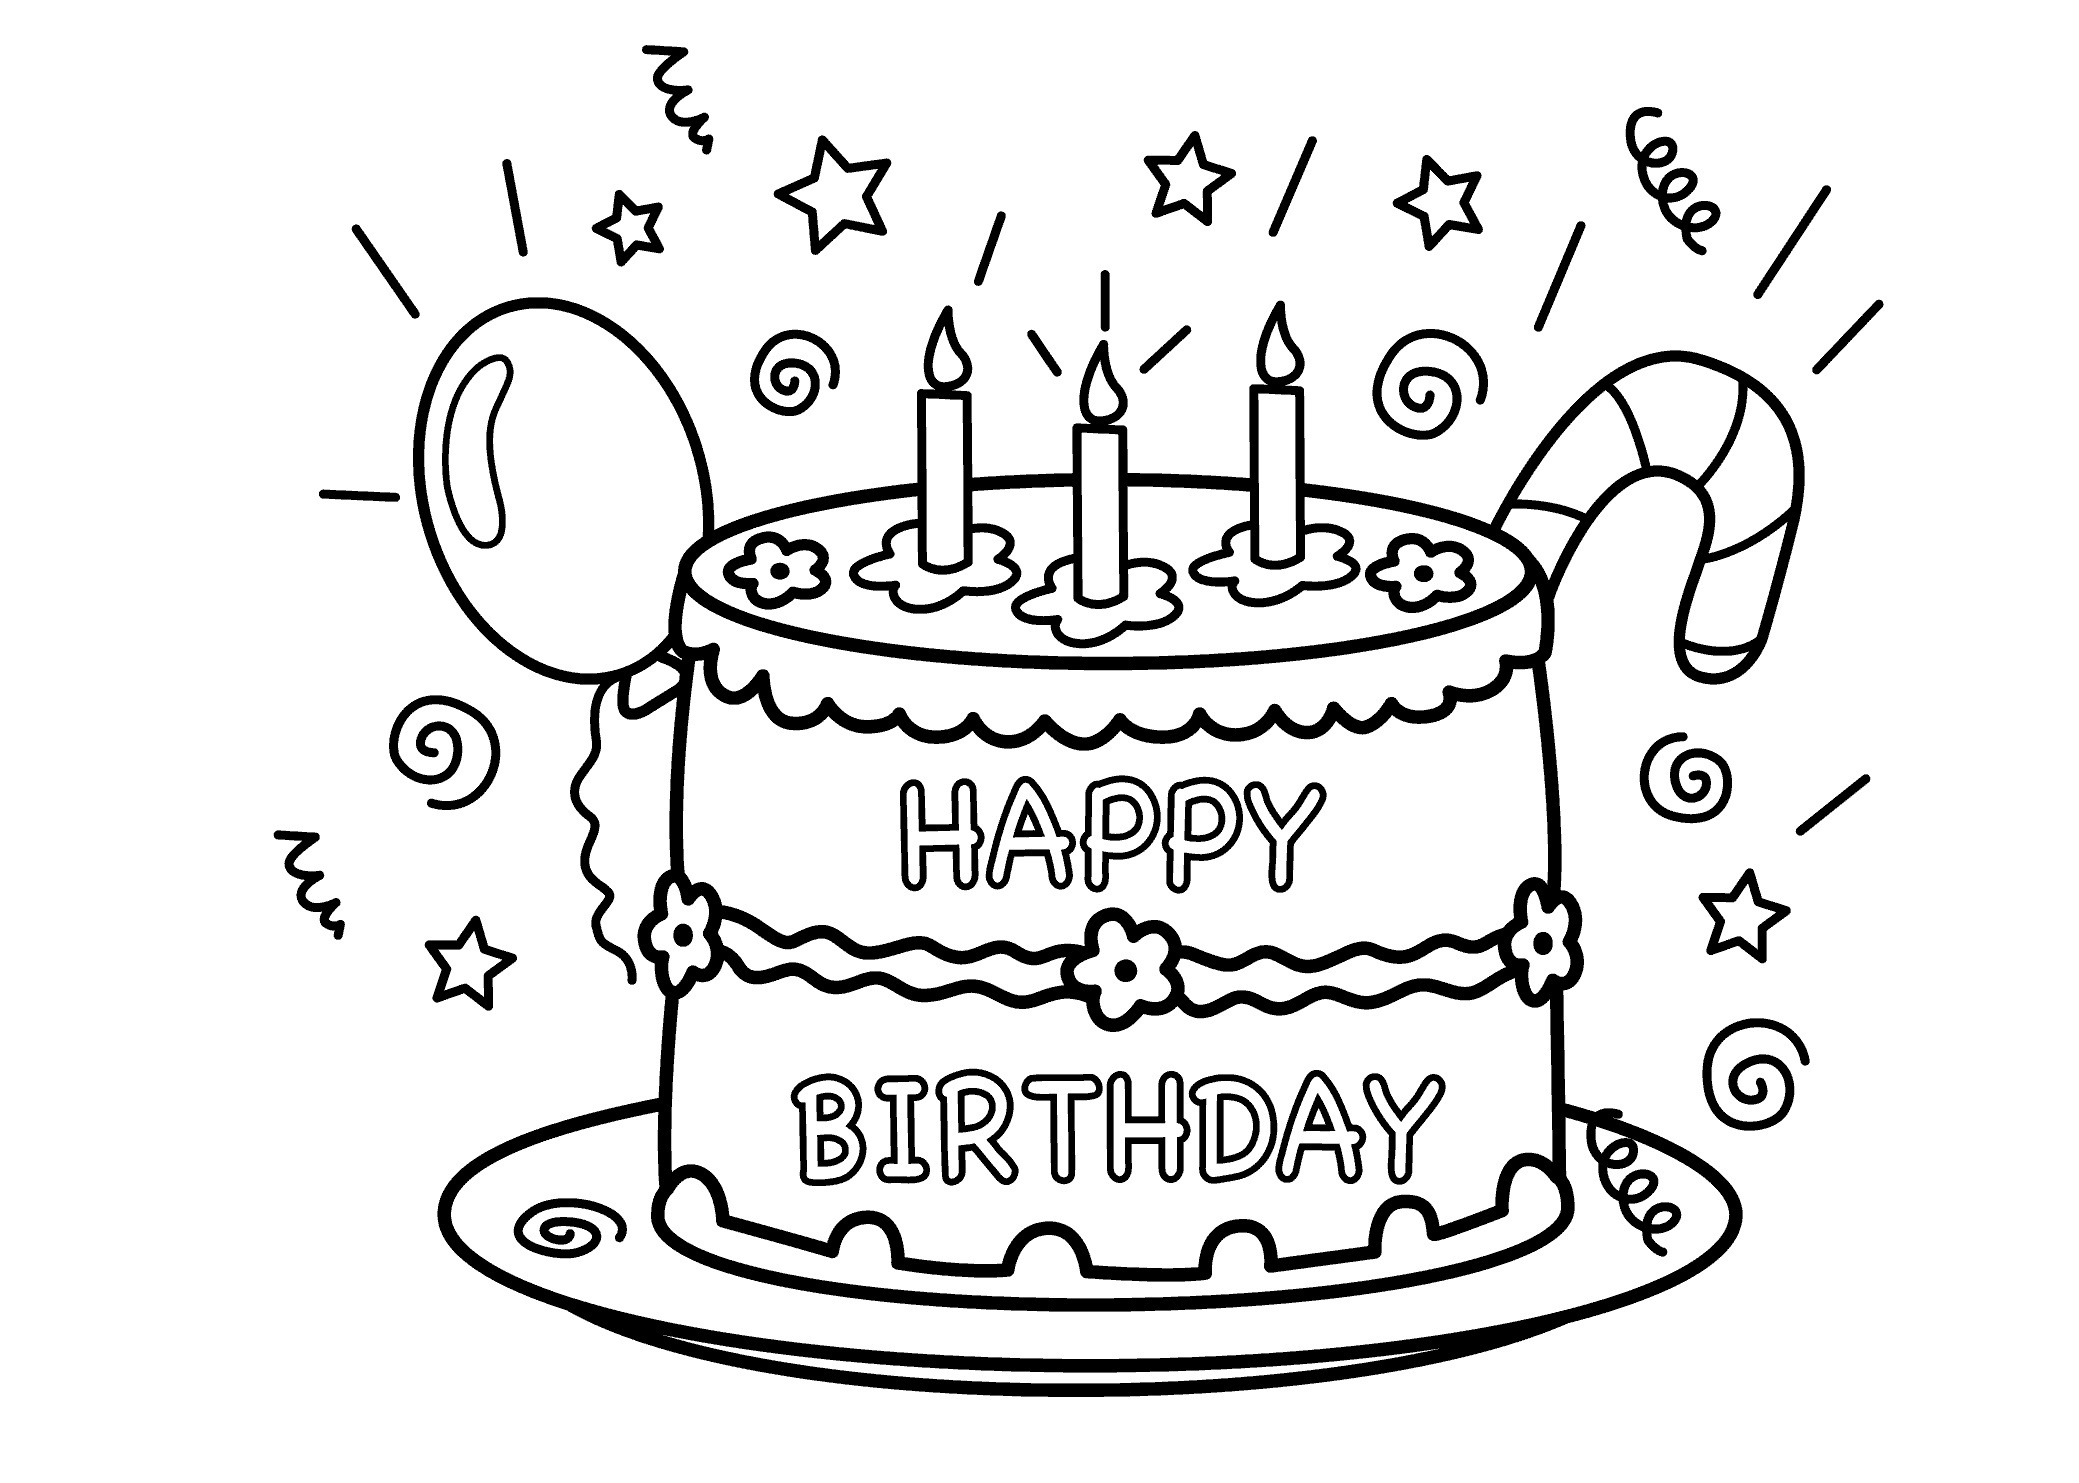 free printable birthday cake coloring pages for kids birthday cake colour in - Colour In Picture